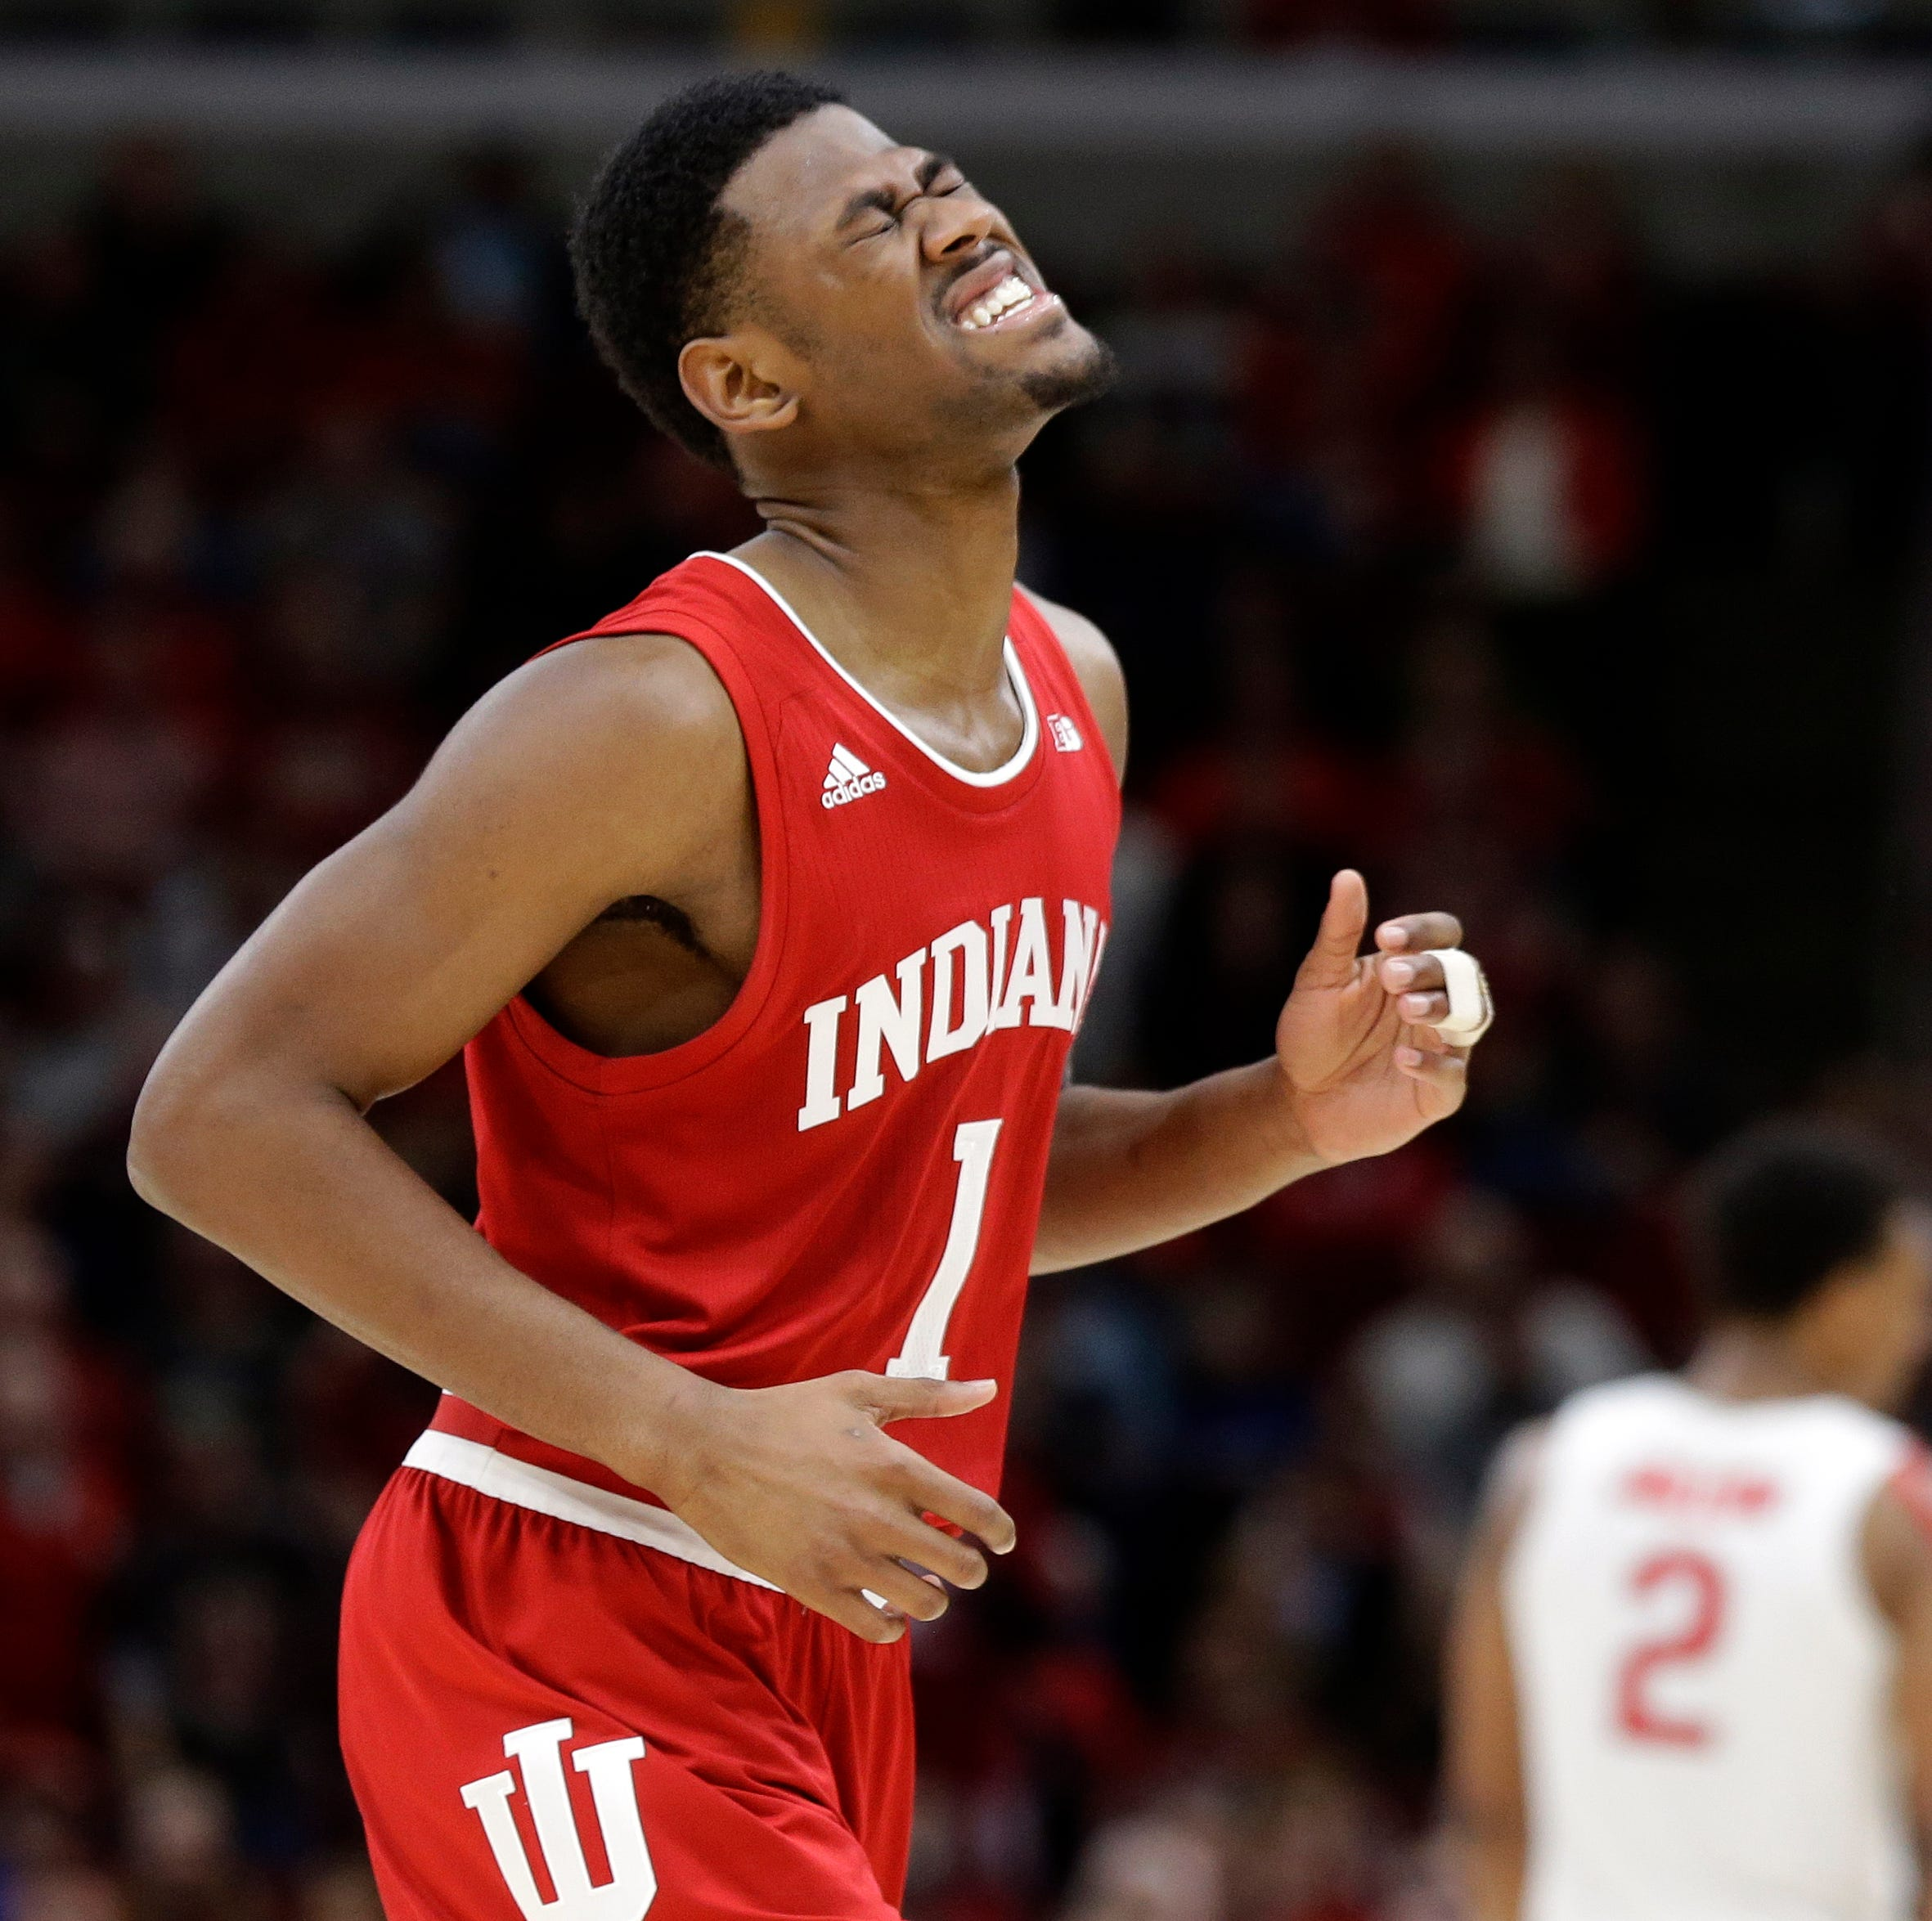 As March heats up, once elite IU basketball fades into background — again